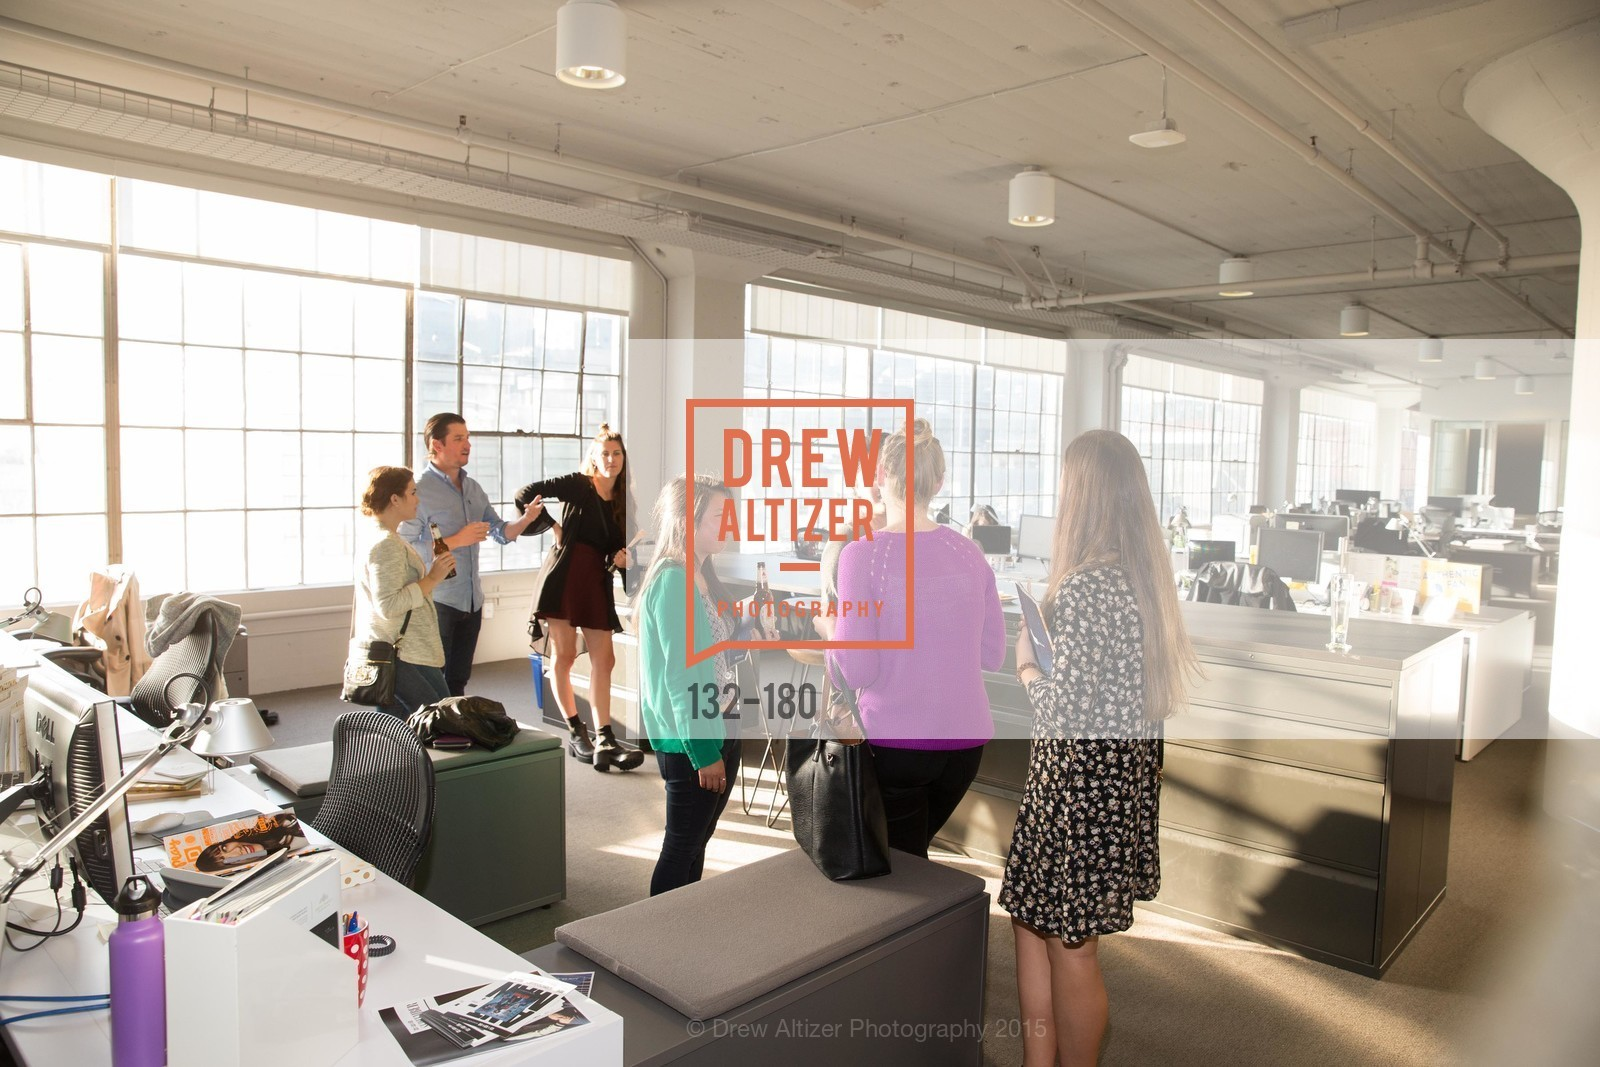 atmosphere, Wired Magazine July Cover Release Celebration at New Wired Office, June 24th, 2015, Photo,Drew Altizer, Drew Altizer Photography, full-service agency, private events, San Francisco photographer, photographer california